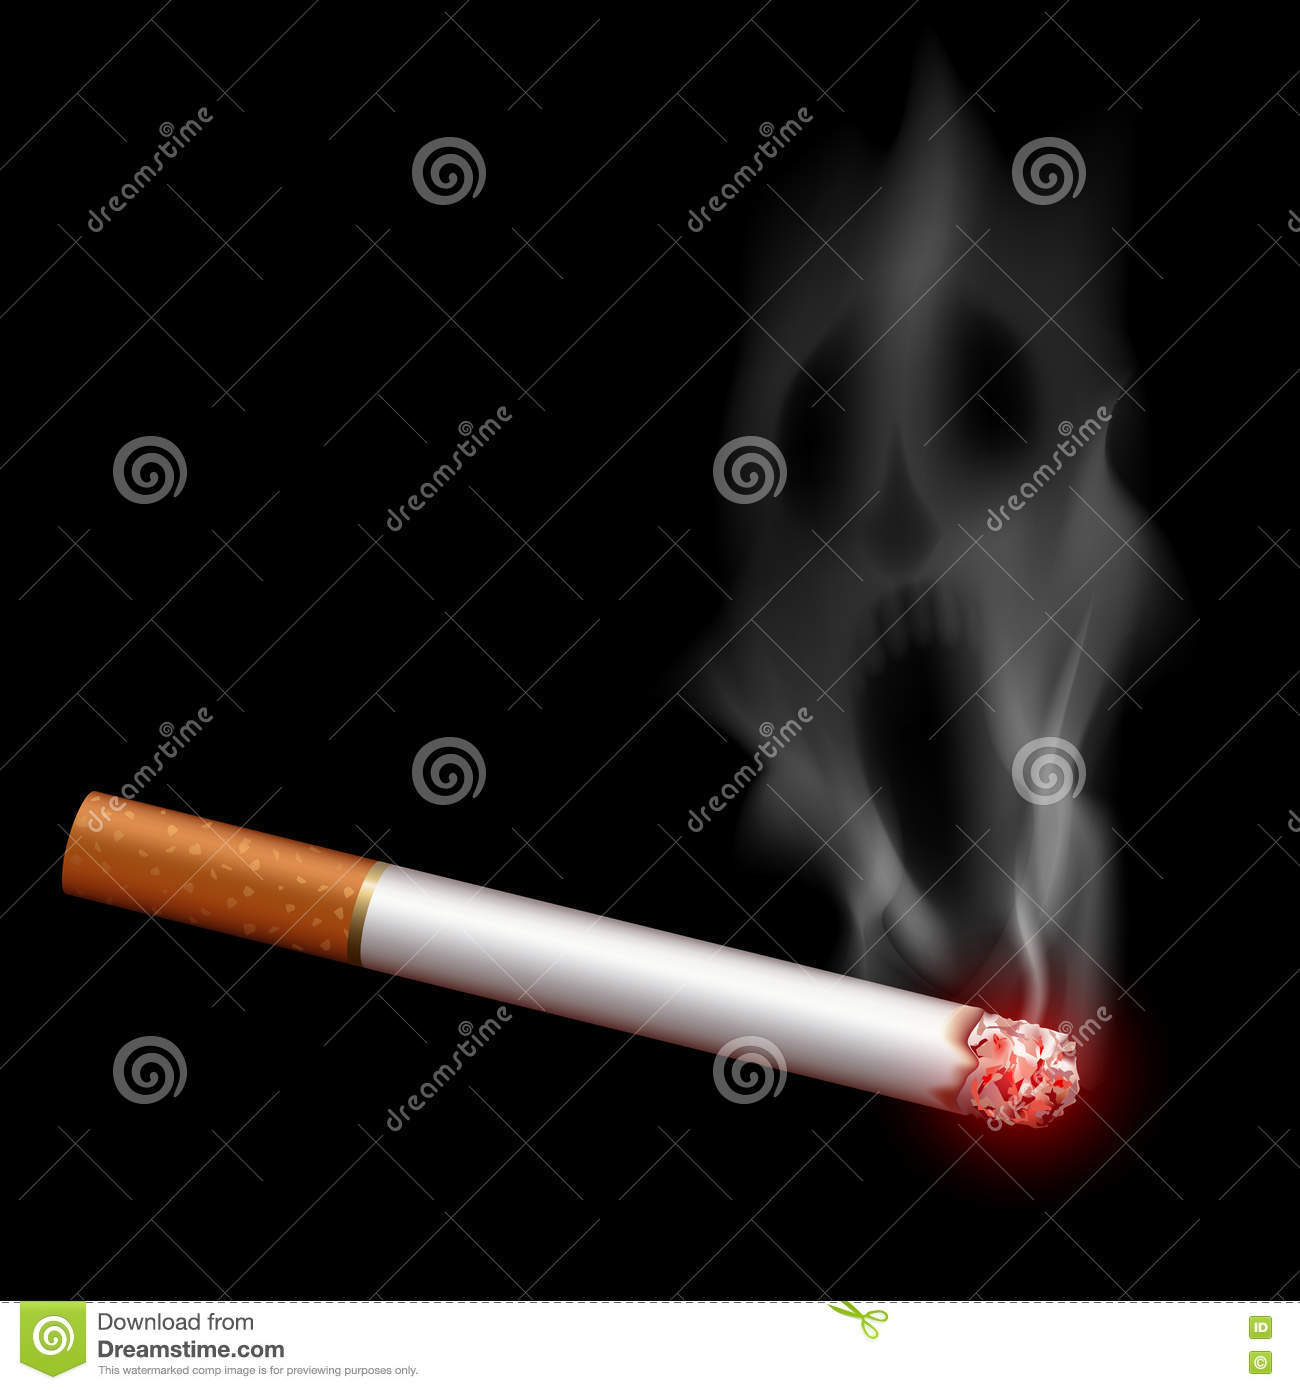 Cigarette With Smoke In The Form Of A Monster  Bad Habit